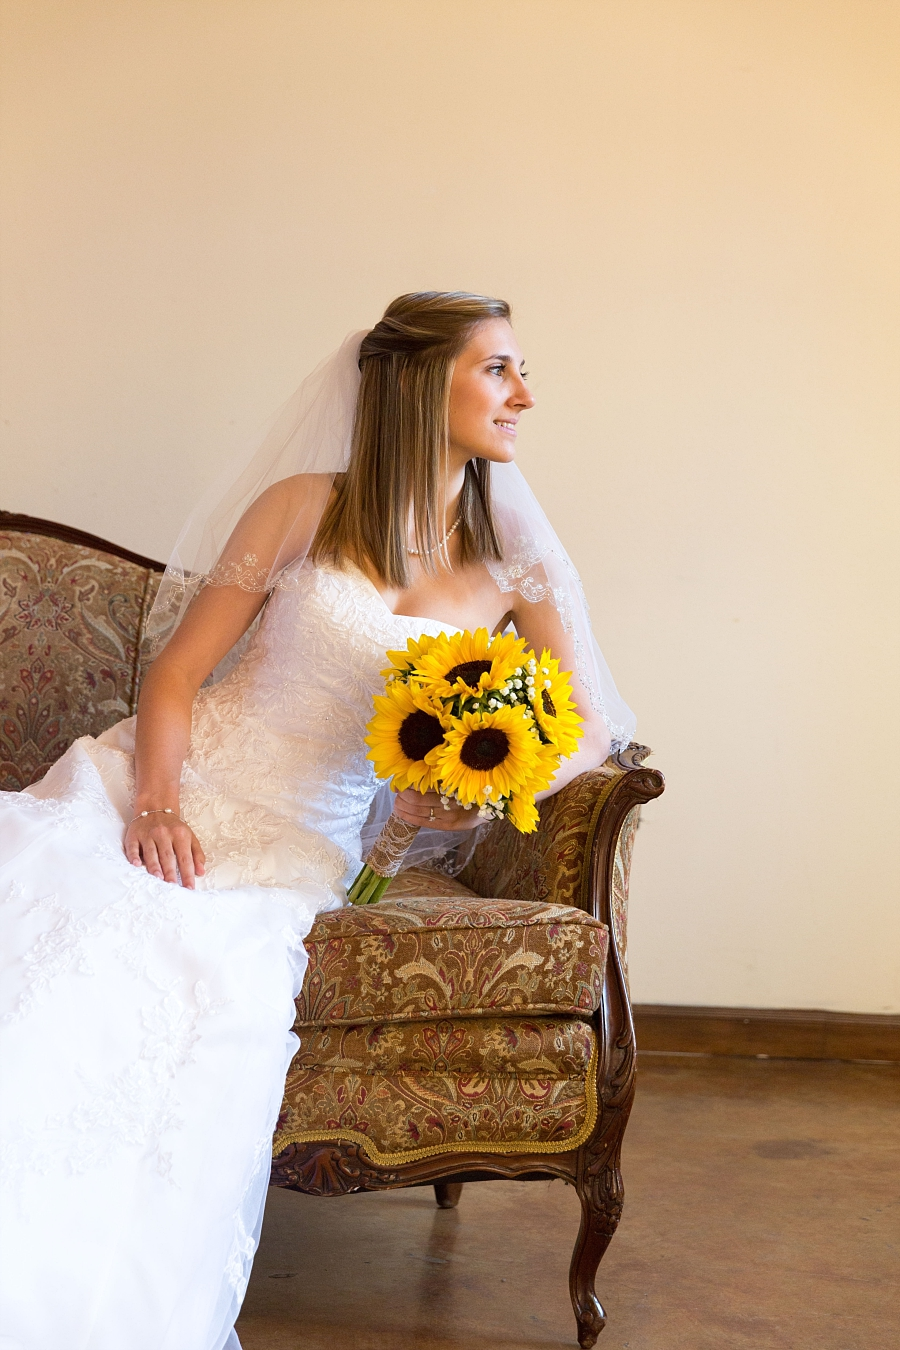 Stacy-Anderson-Photography-Carriage-House-Houston-Wedding-Photographer_0003.jpg